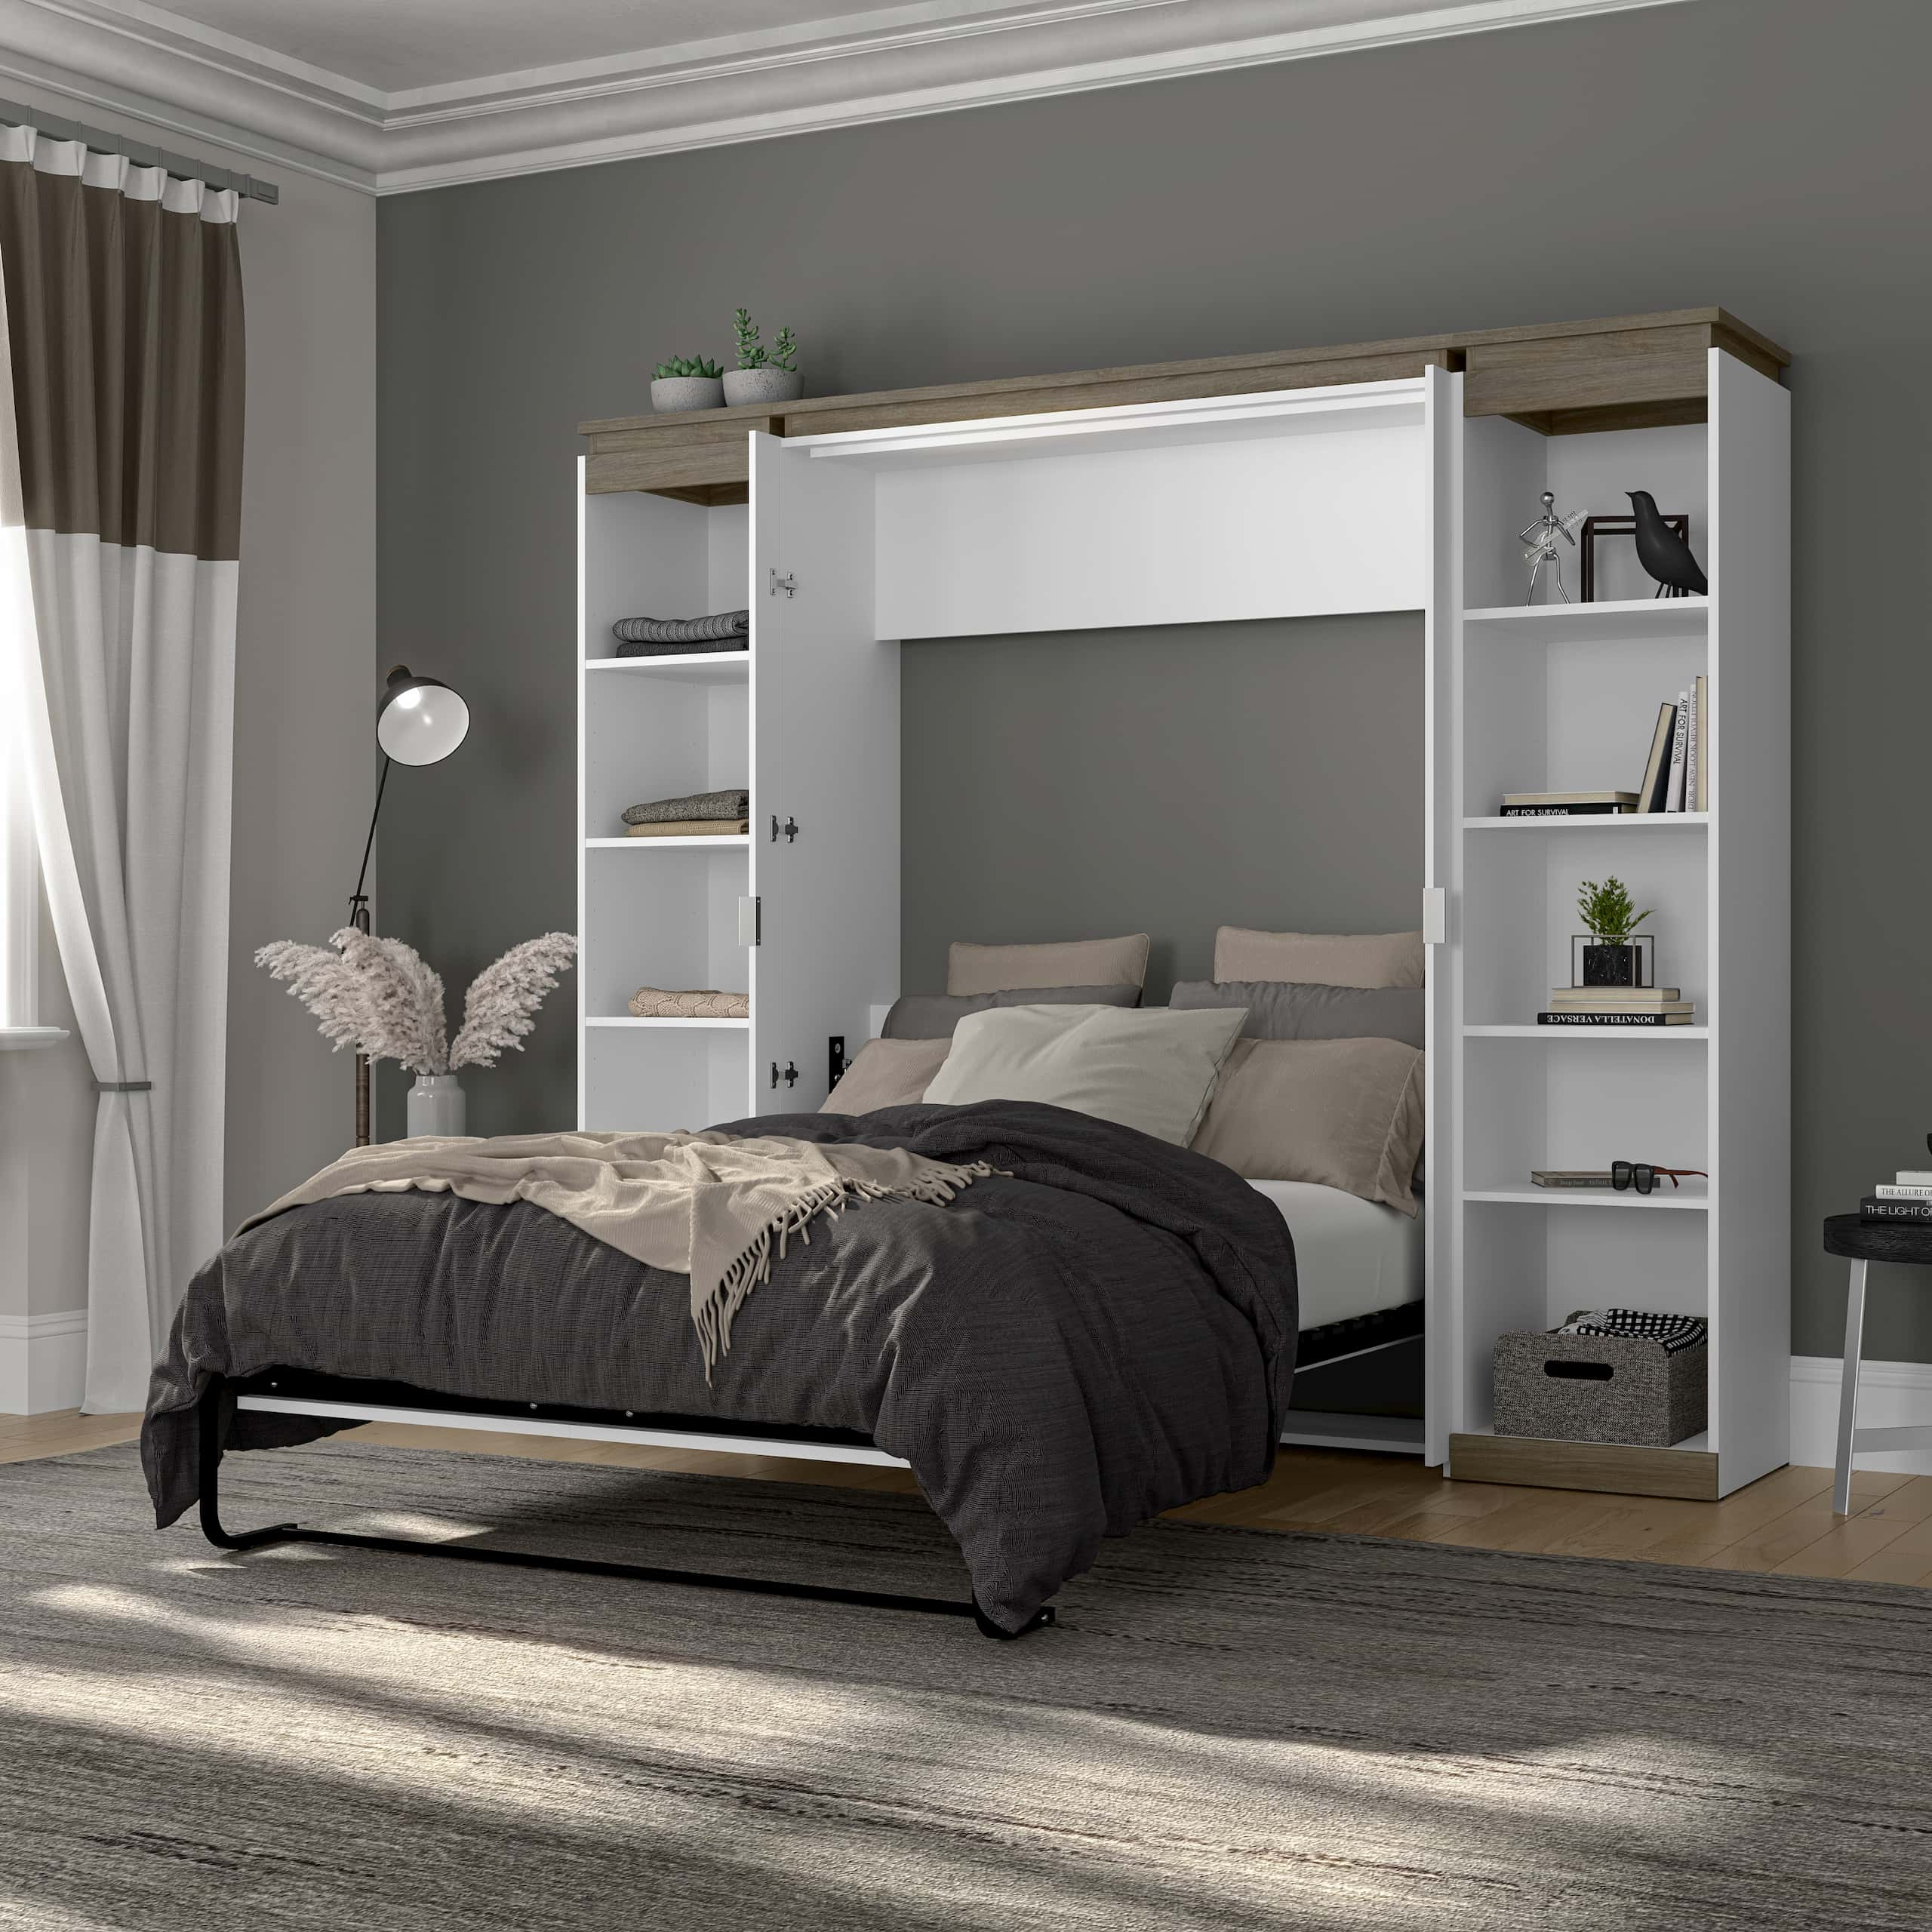 Looking for Clever Home Furniture Solutions?  Try a Murphy Bed with Bookcase!